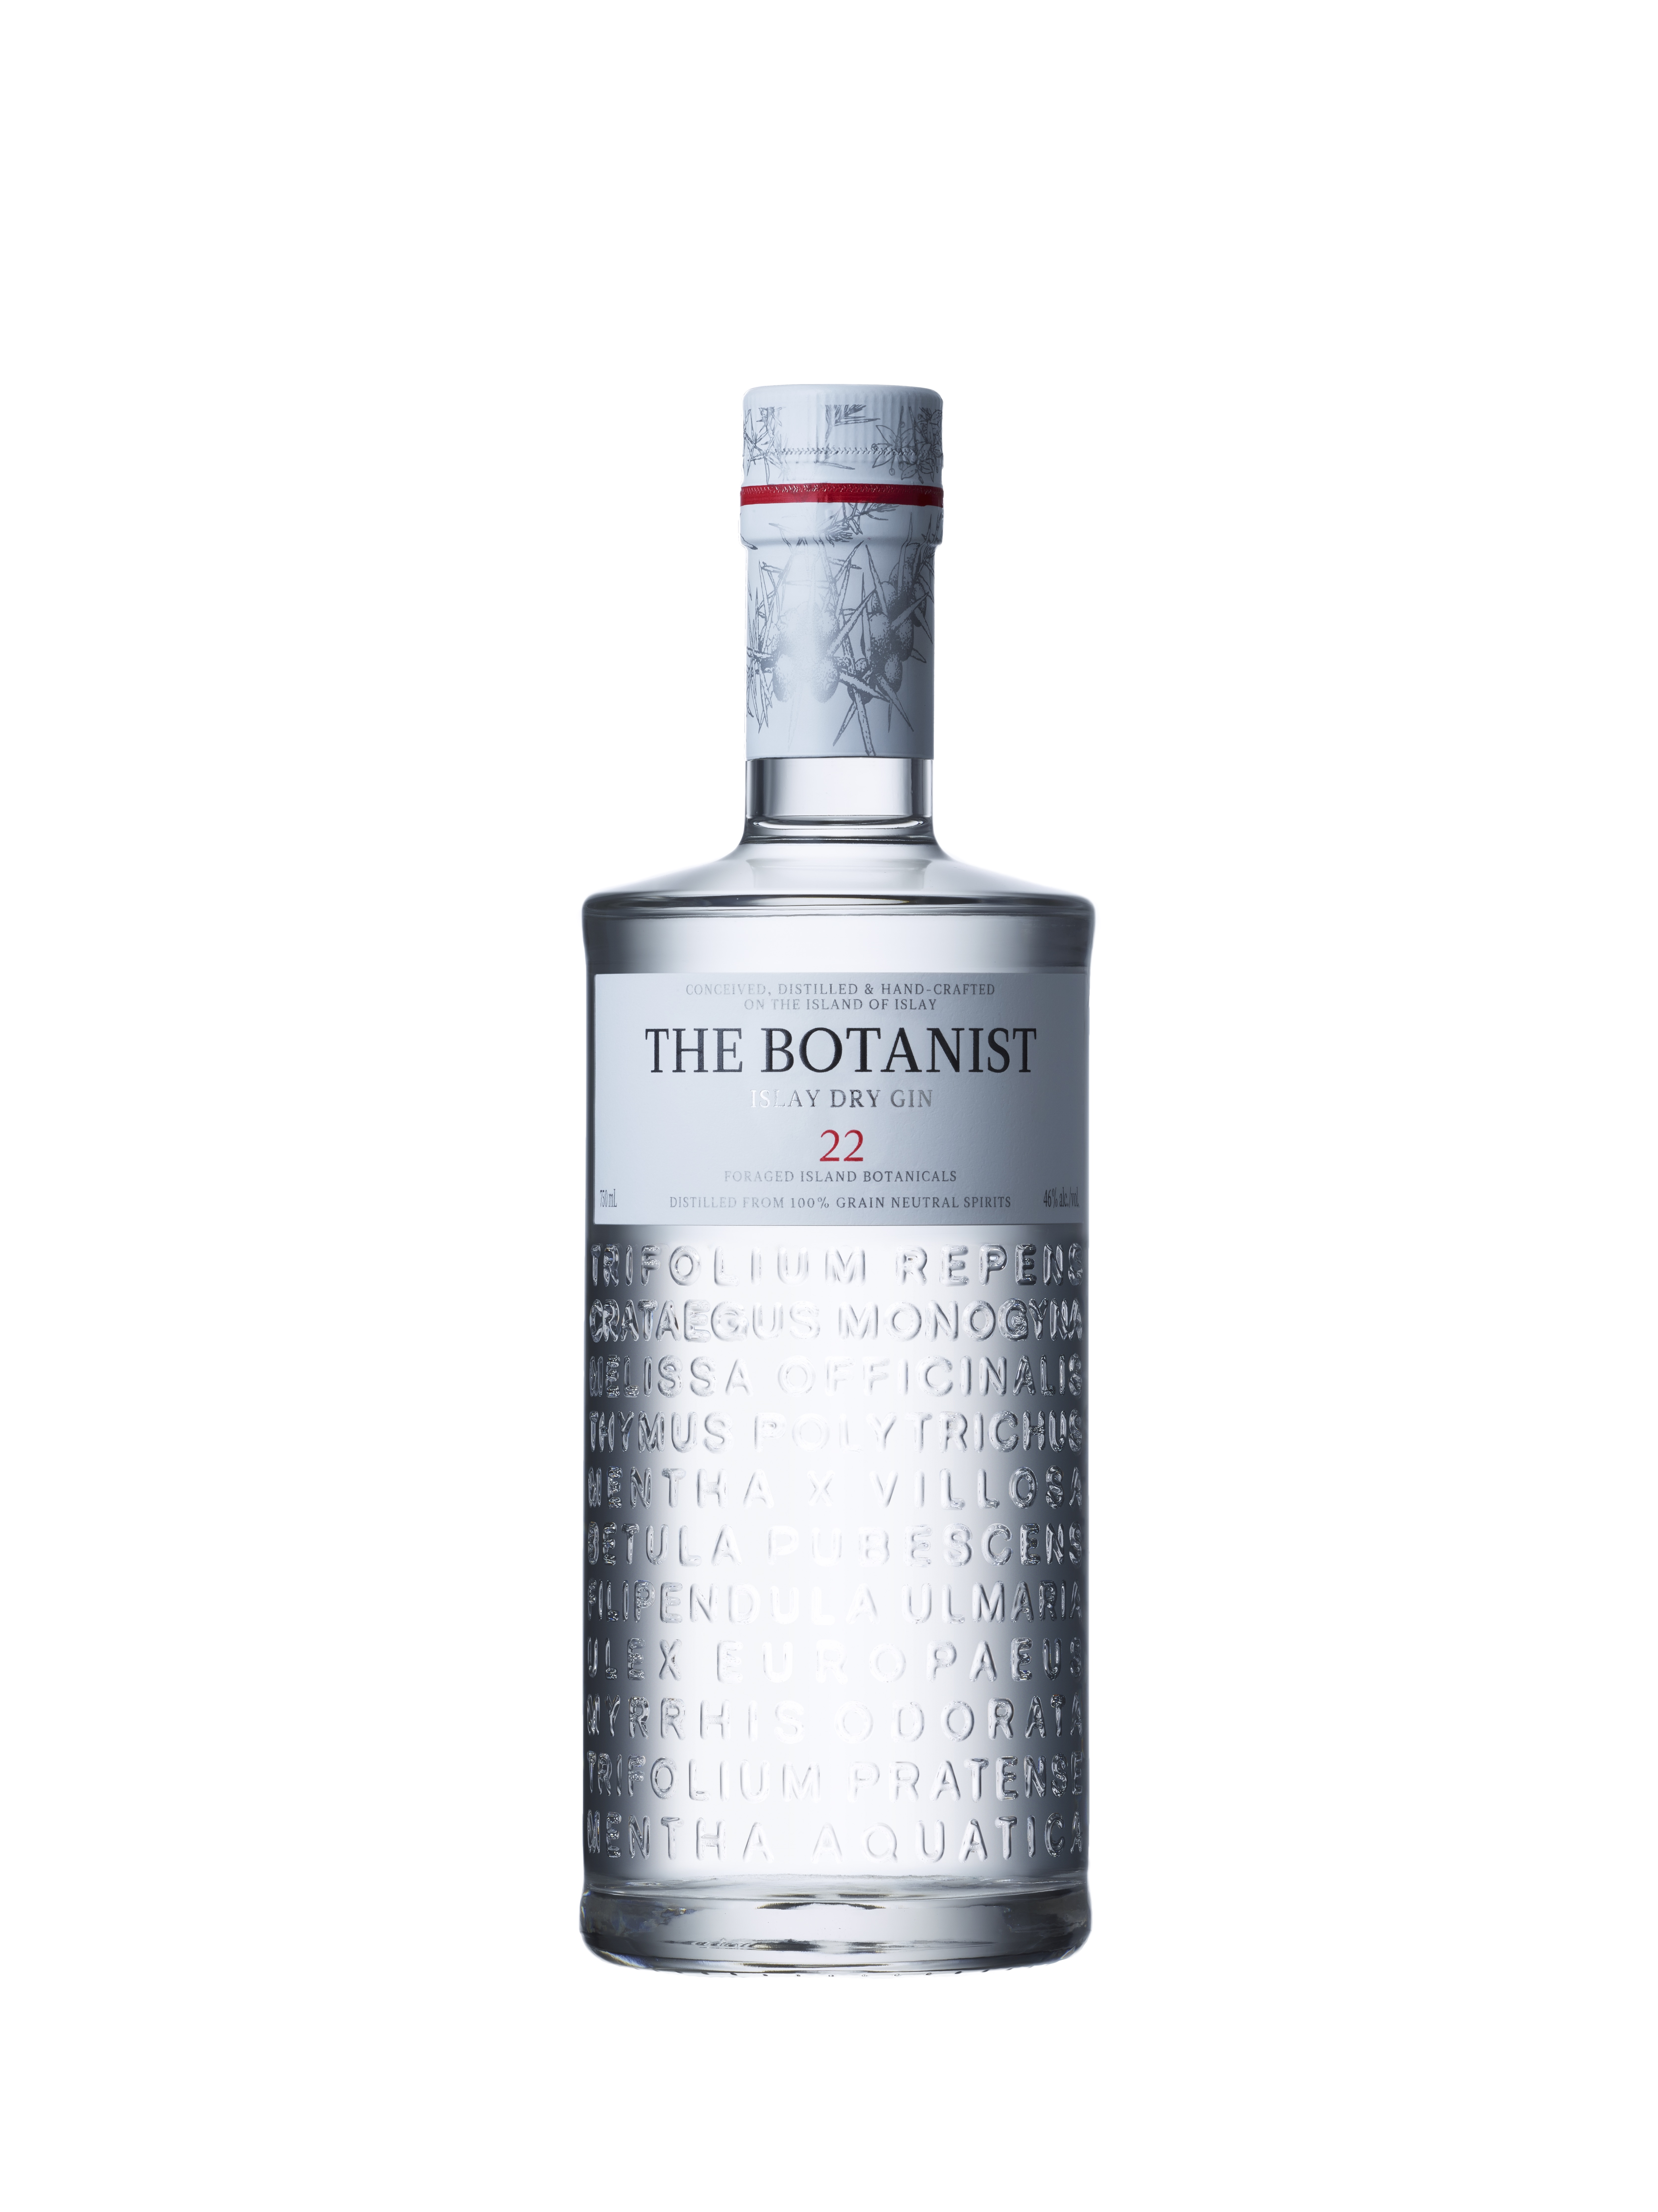 gin-bottle-the-botanist-islay-0218